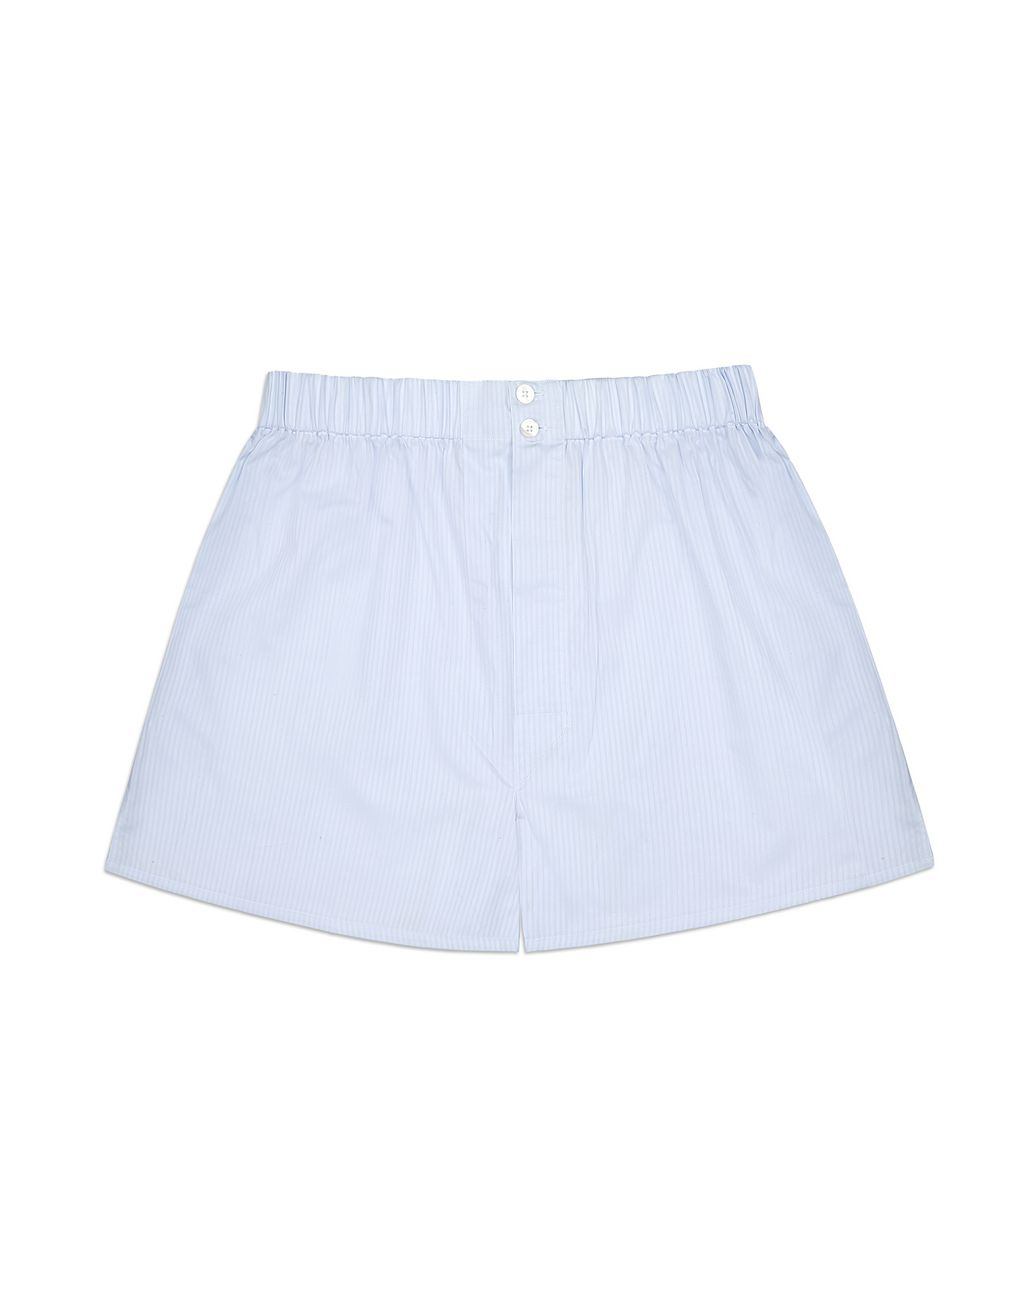 BRIONI Light Blue Short Boxer Underwear Man f